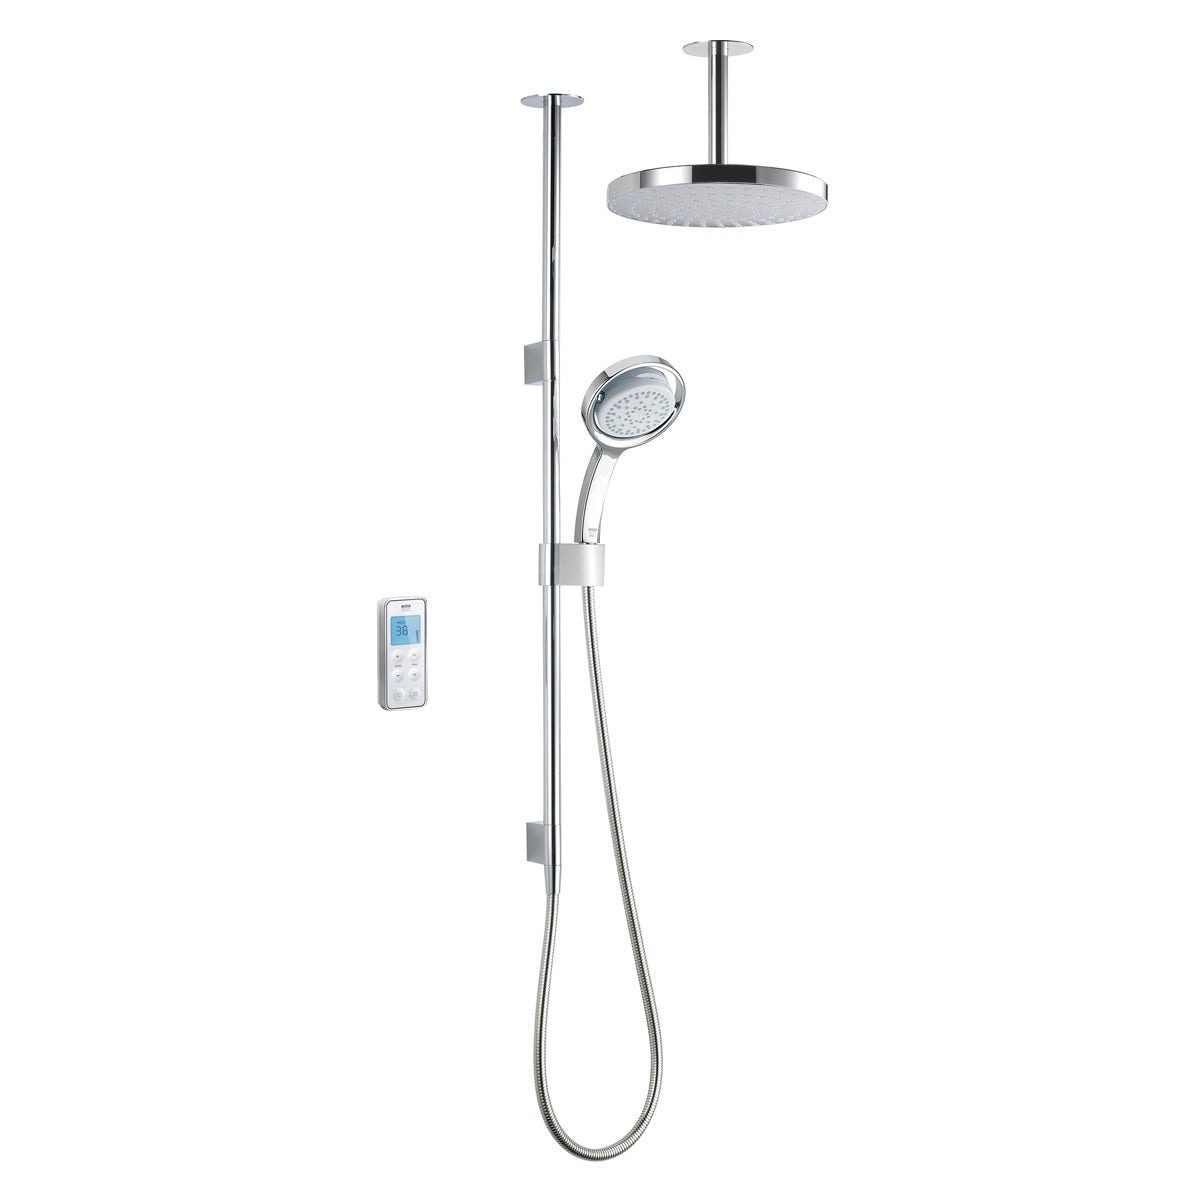 Mira Vision dual ceiling fed digital shower pumped